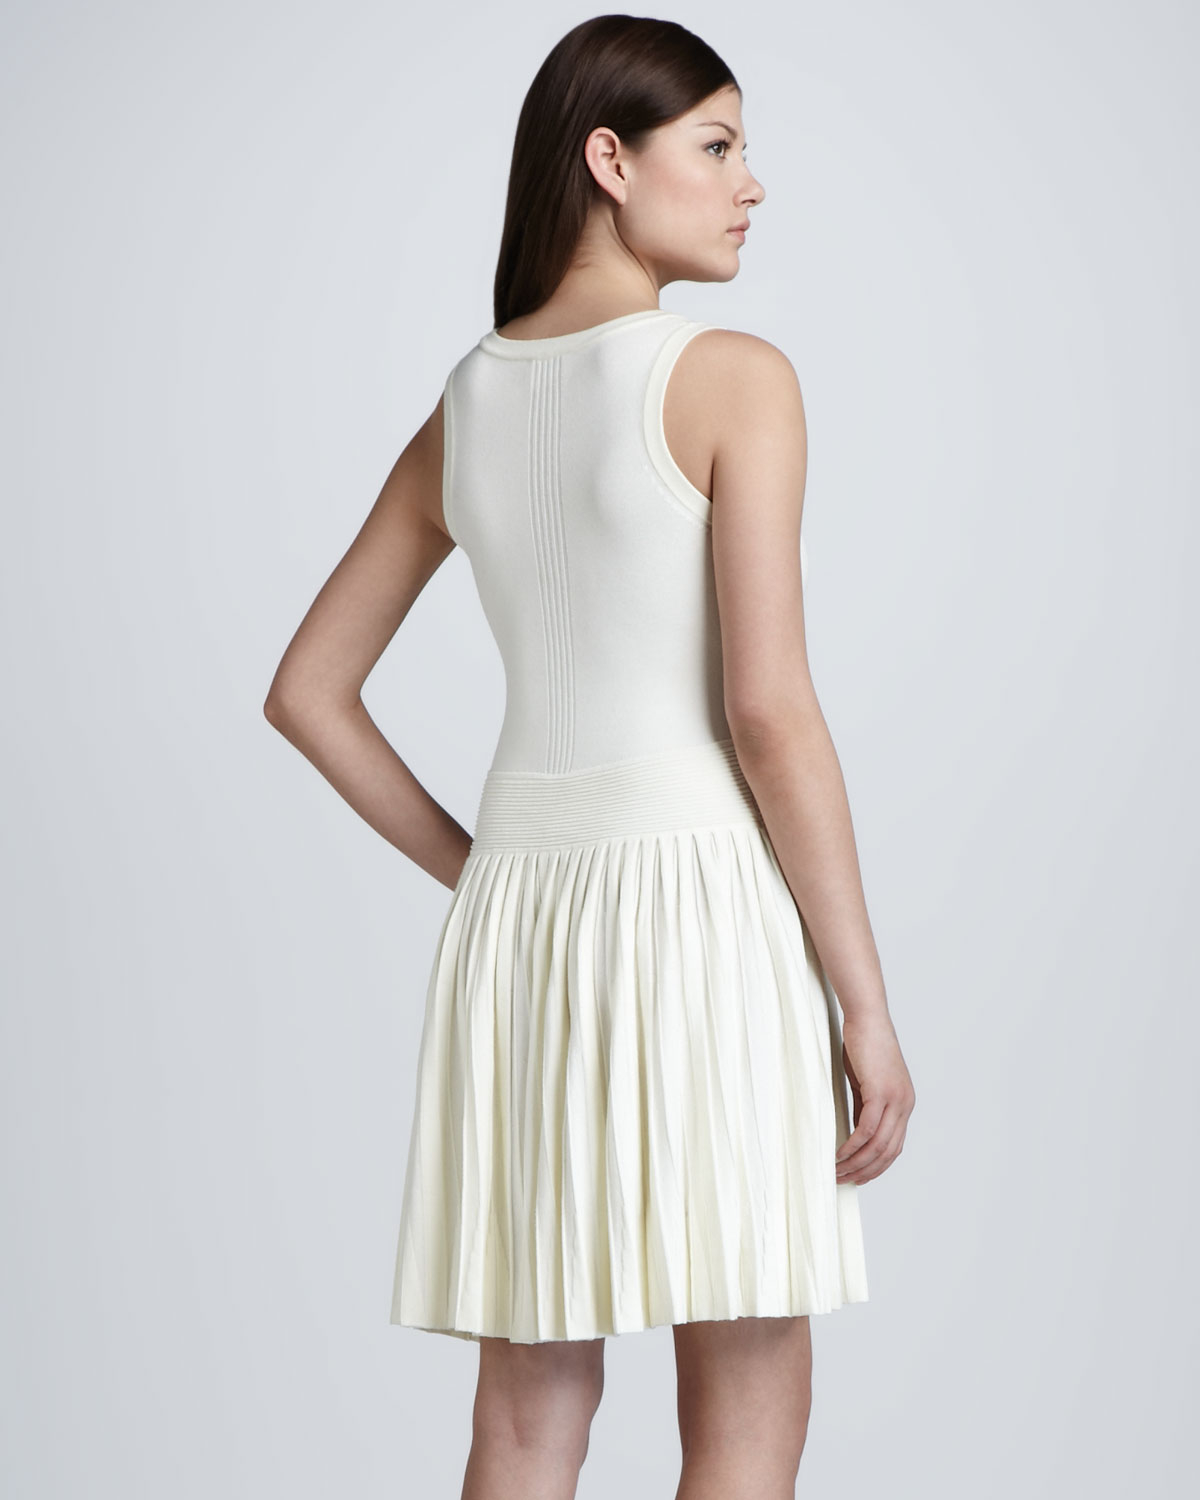 Nature Dress: MILLY Josephine Pleated Knit Dress In White (Natural)